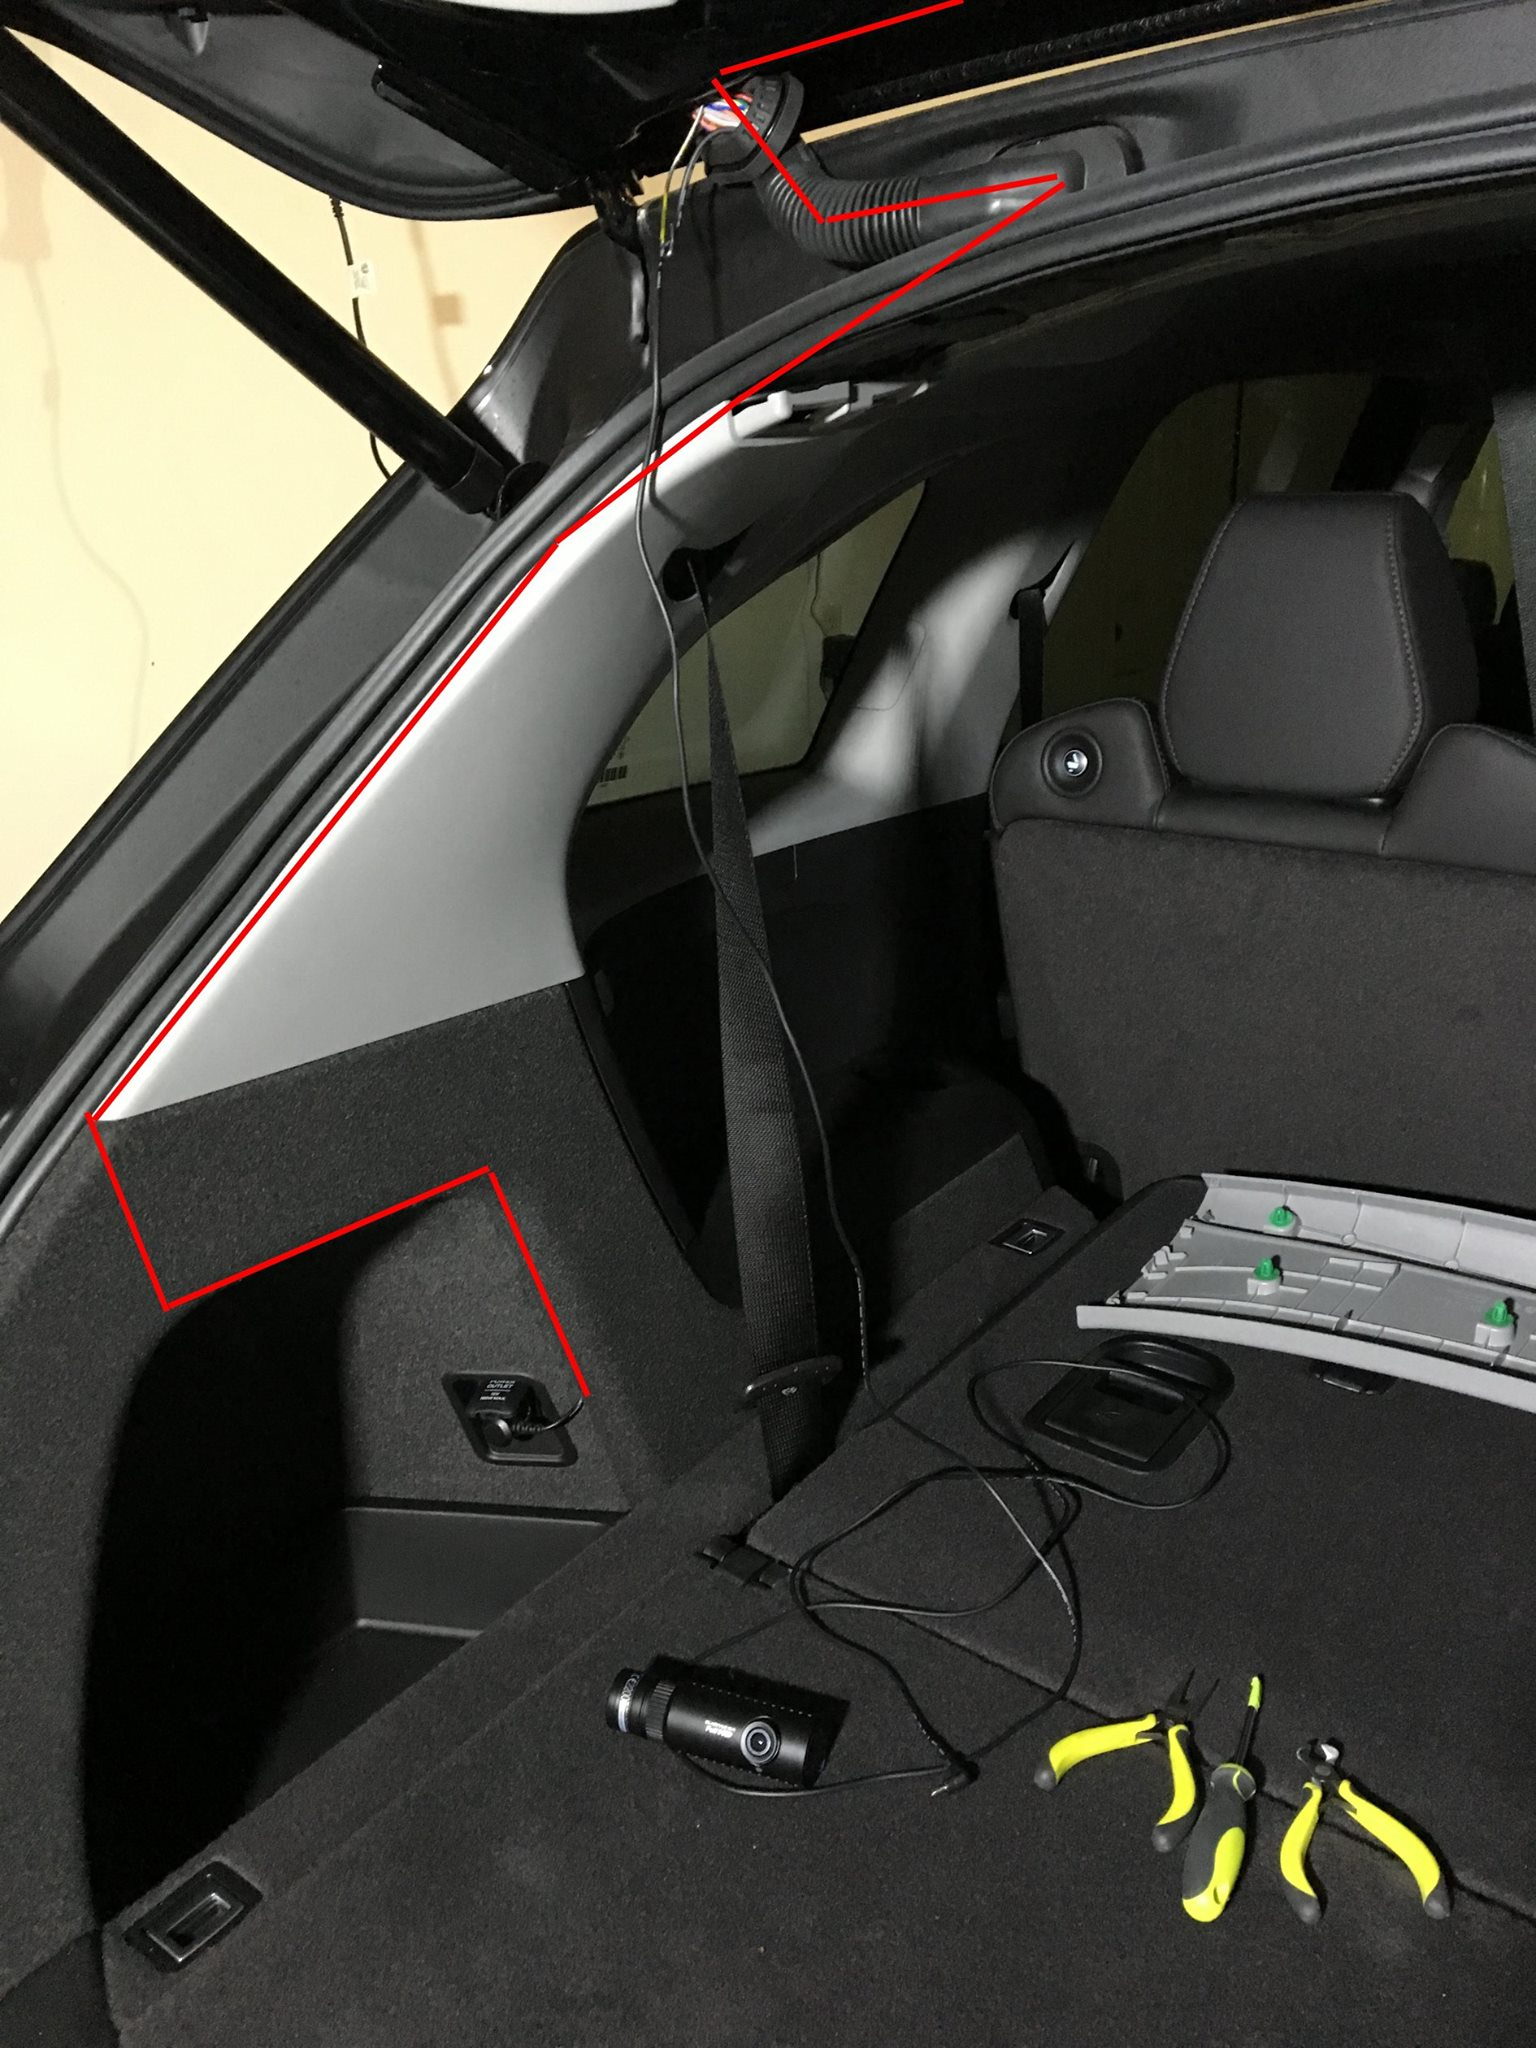 Dual Dash Cam Blackvue Dr650gw 1ch X 2 Installation 2016 Mdx Tech 2011 Acura Rdx Fuse Box Black Cloth Panel Is Easy To Pry They Are Held By Clips Just Pull And Then The Cord Routed Between Rubber Seal White Grey Plastic